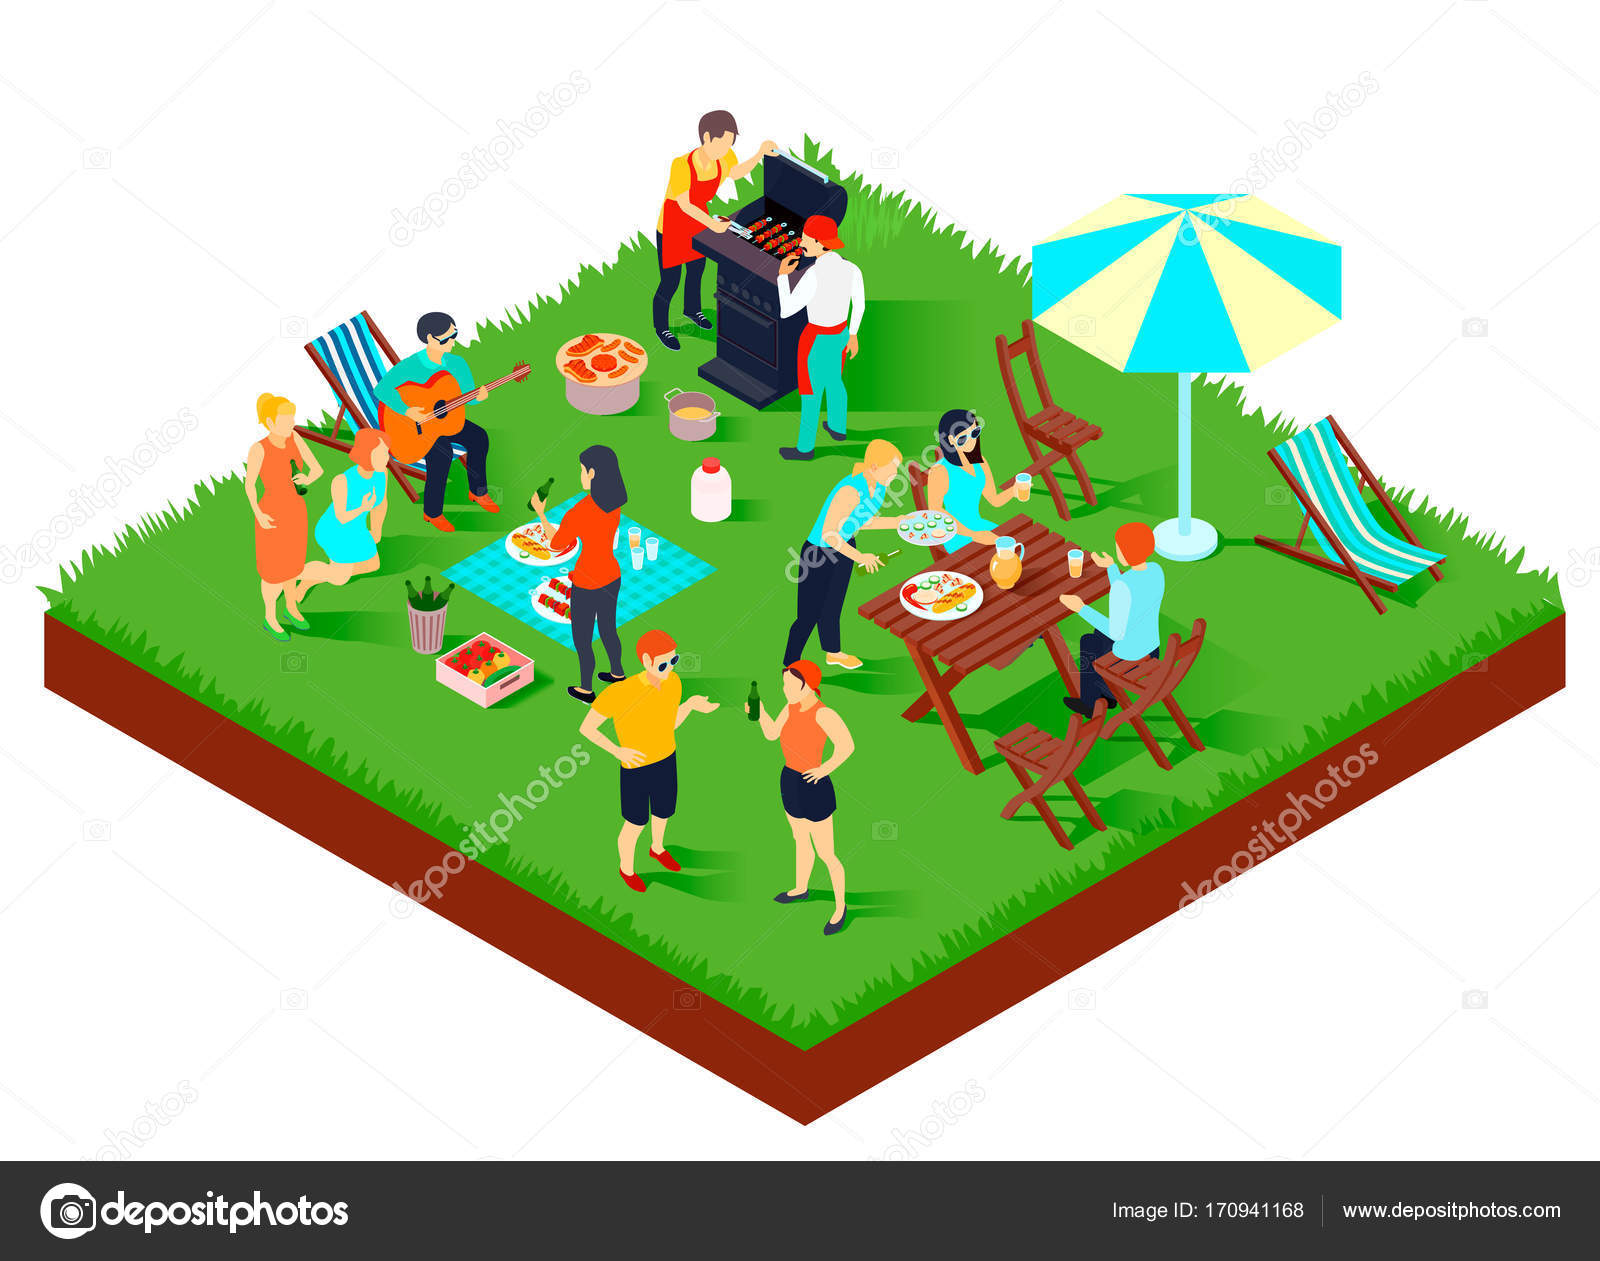 Grill clipart picnic, Grill picnic Transparent FREE for download on  WebStockReview 2020